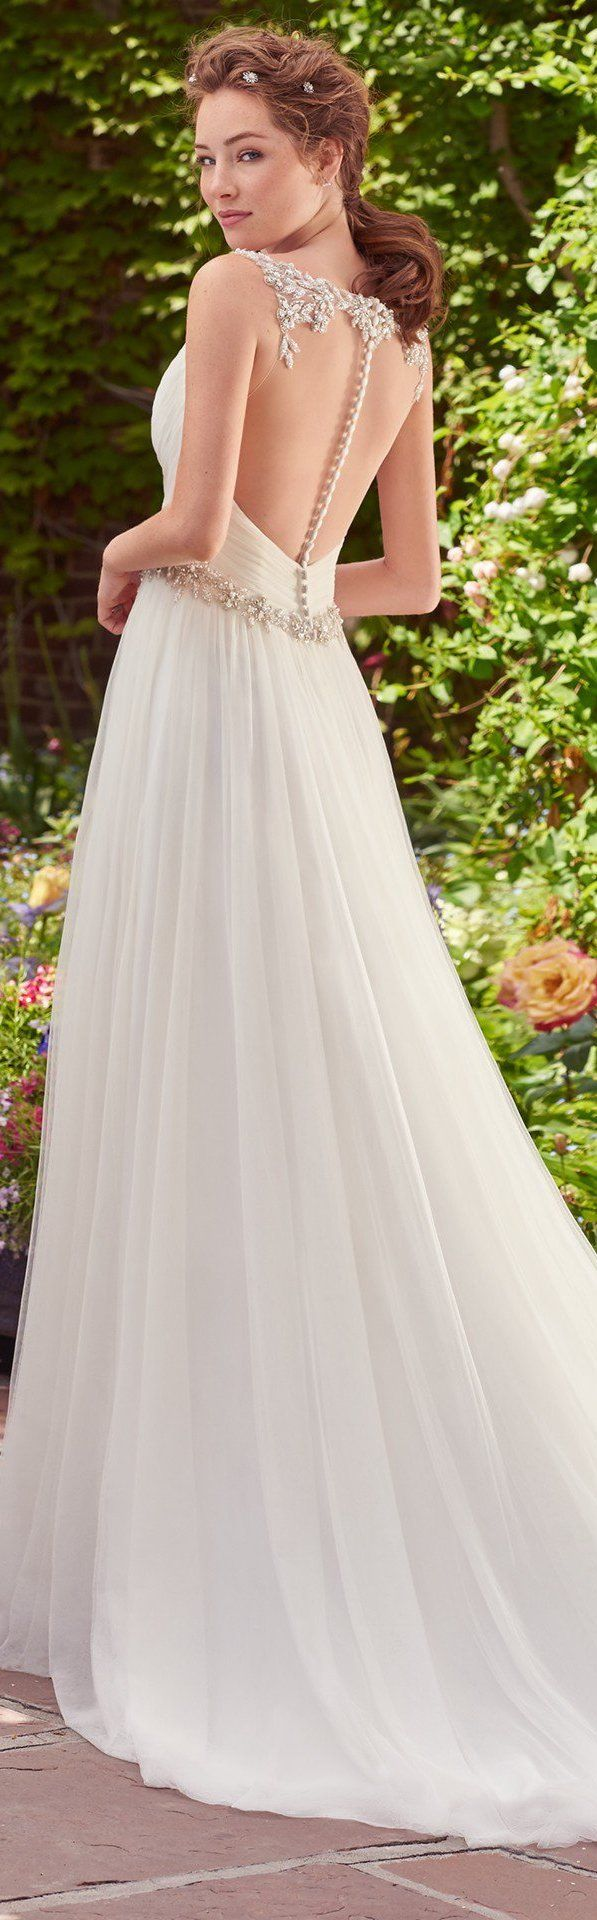 Maggie Sottero Wedding Dresses Affordable